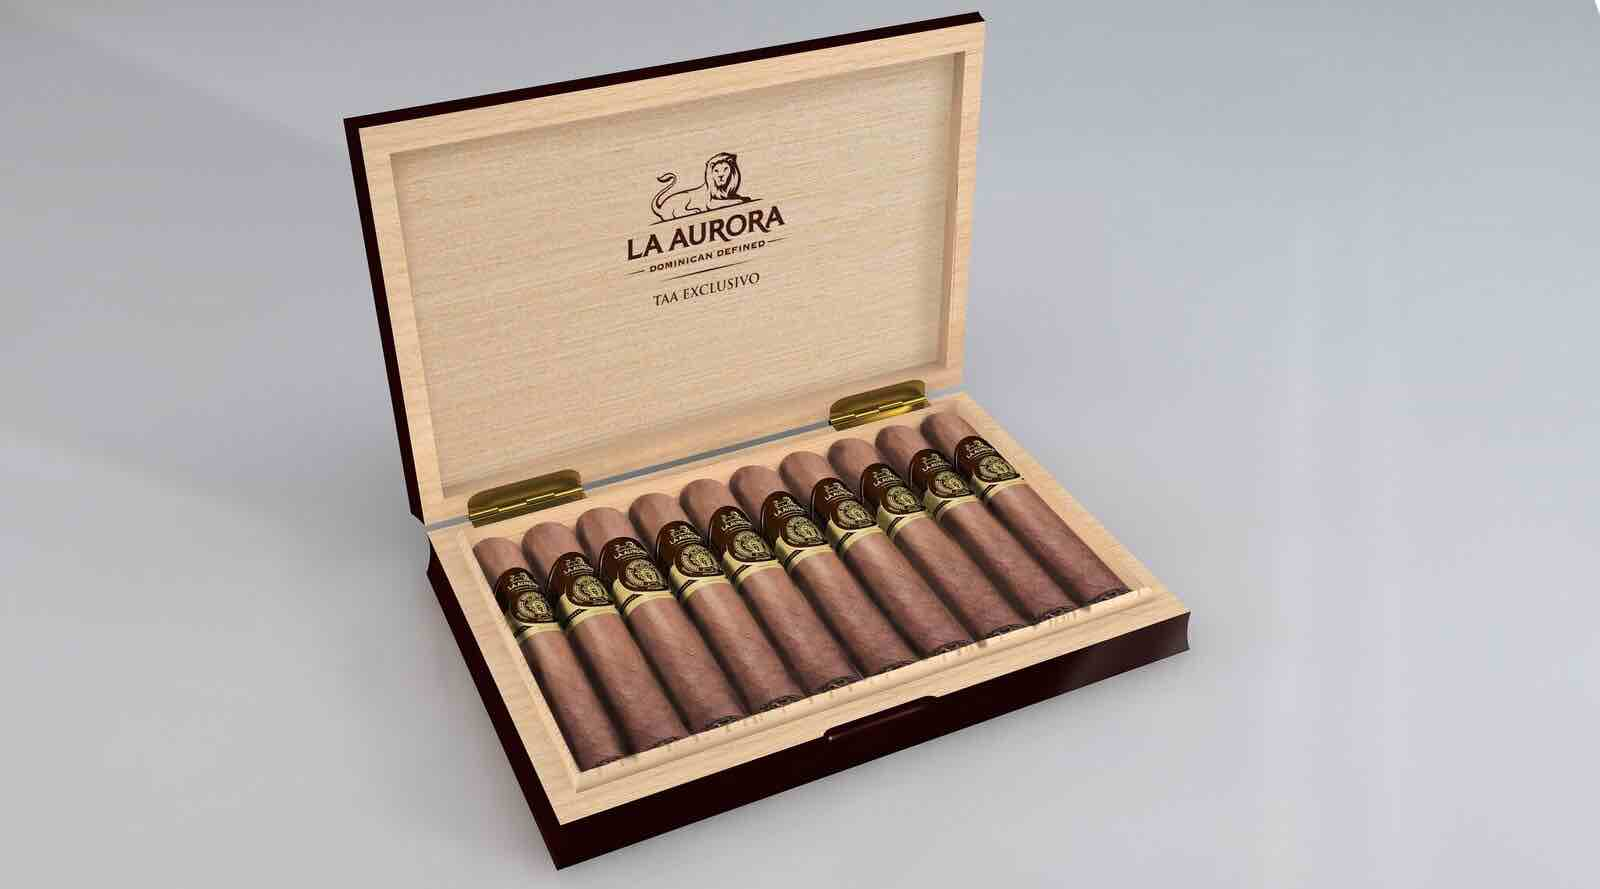 Cigar News: La Aurora to Release TAA Exclusive in 2020